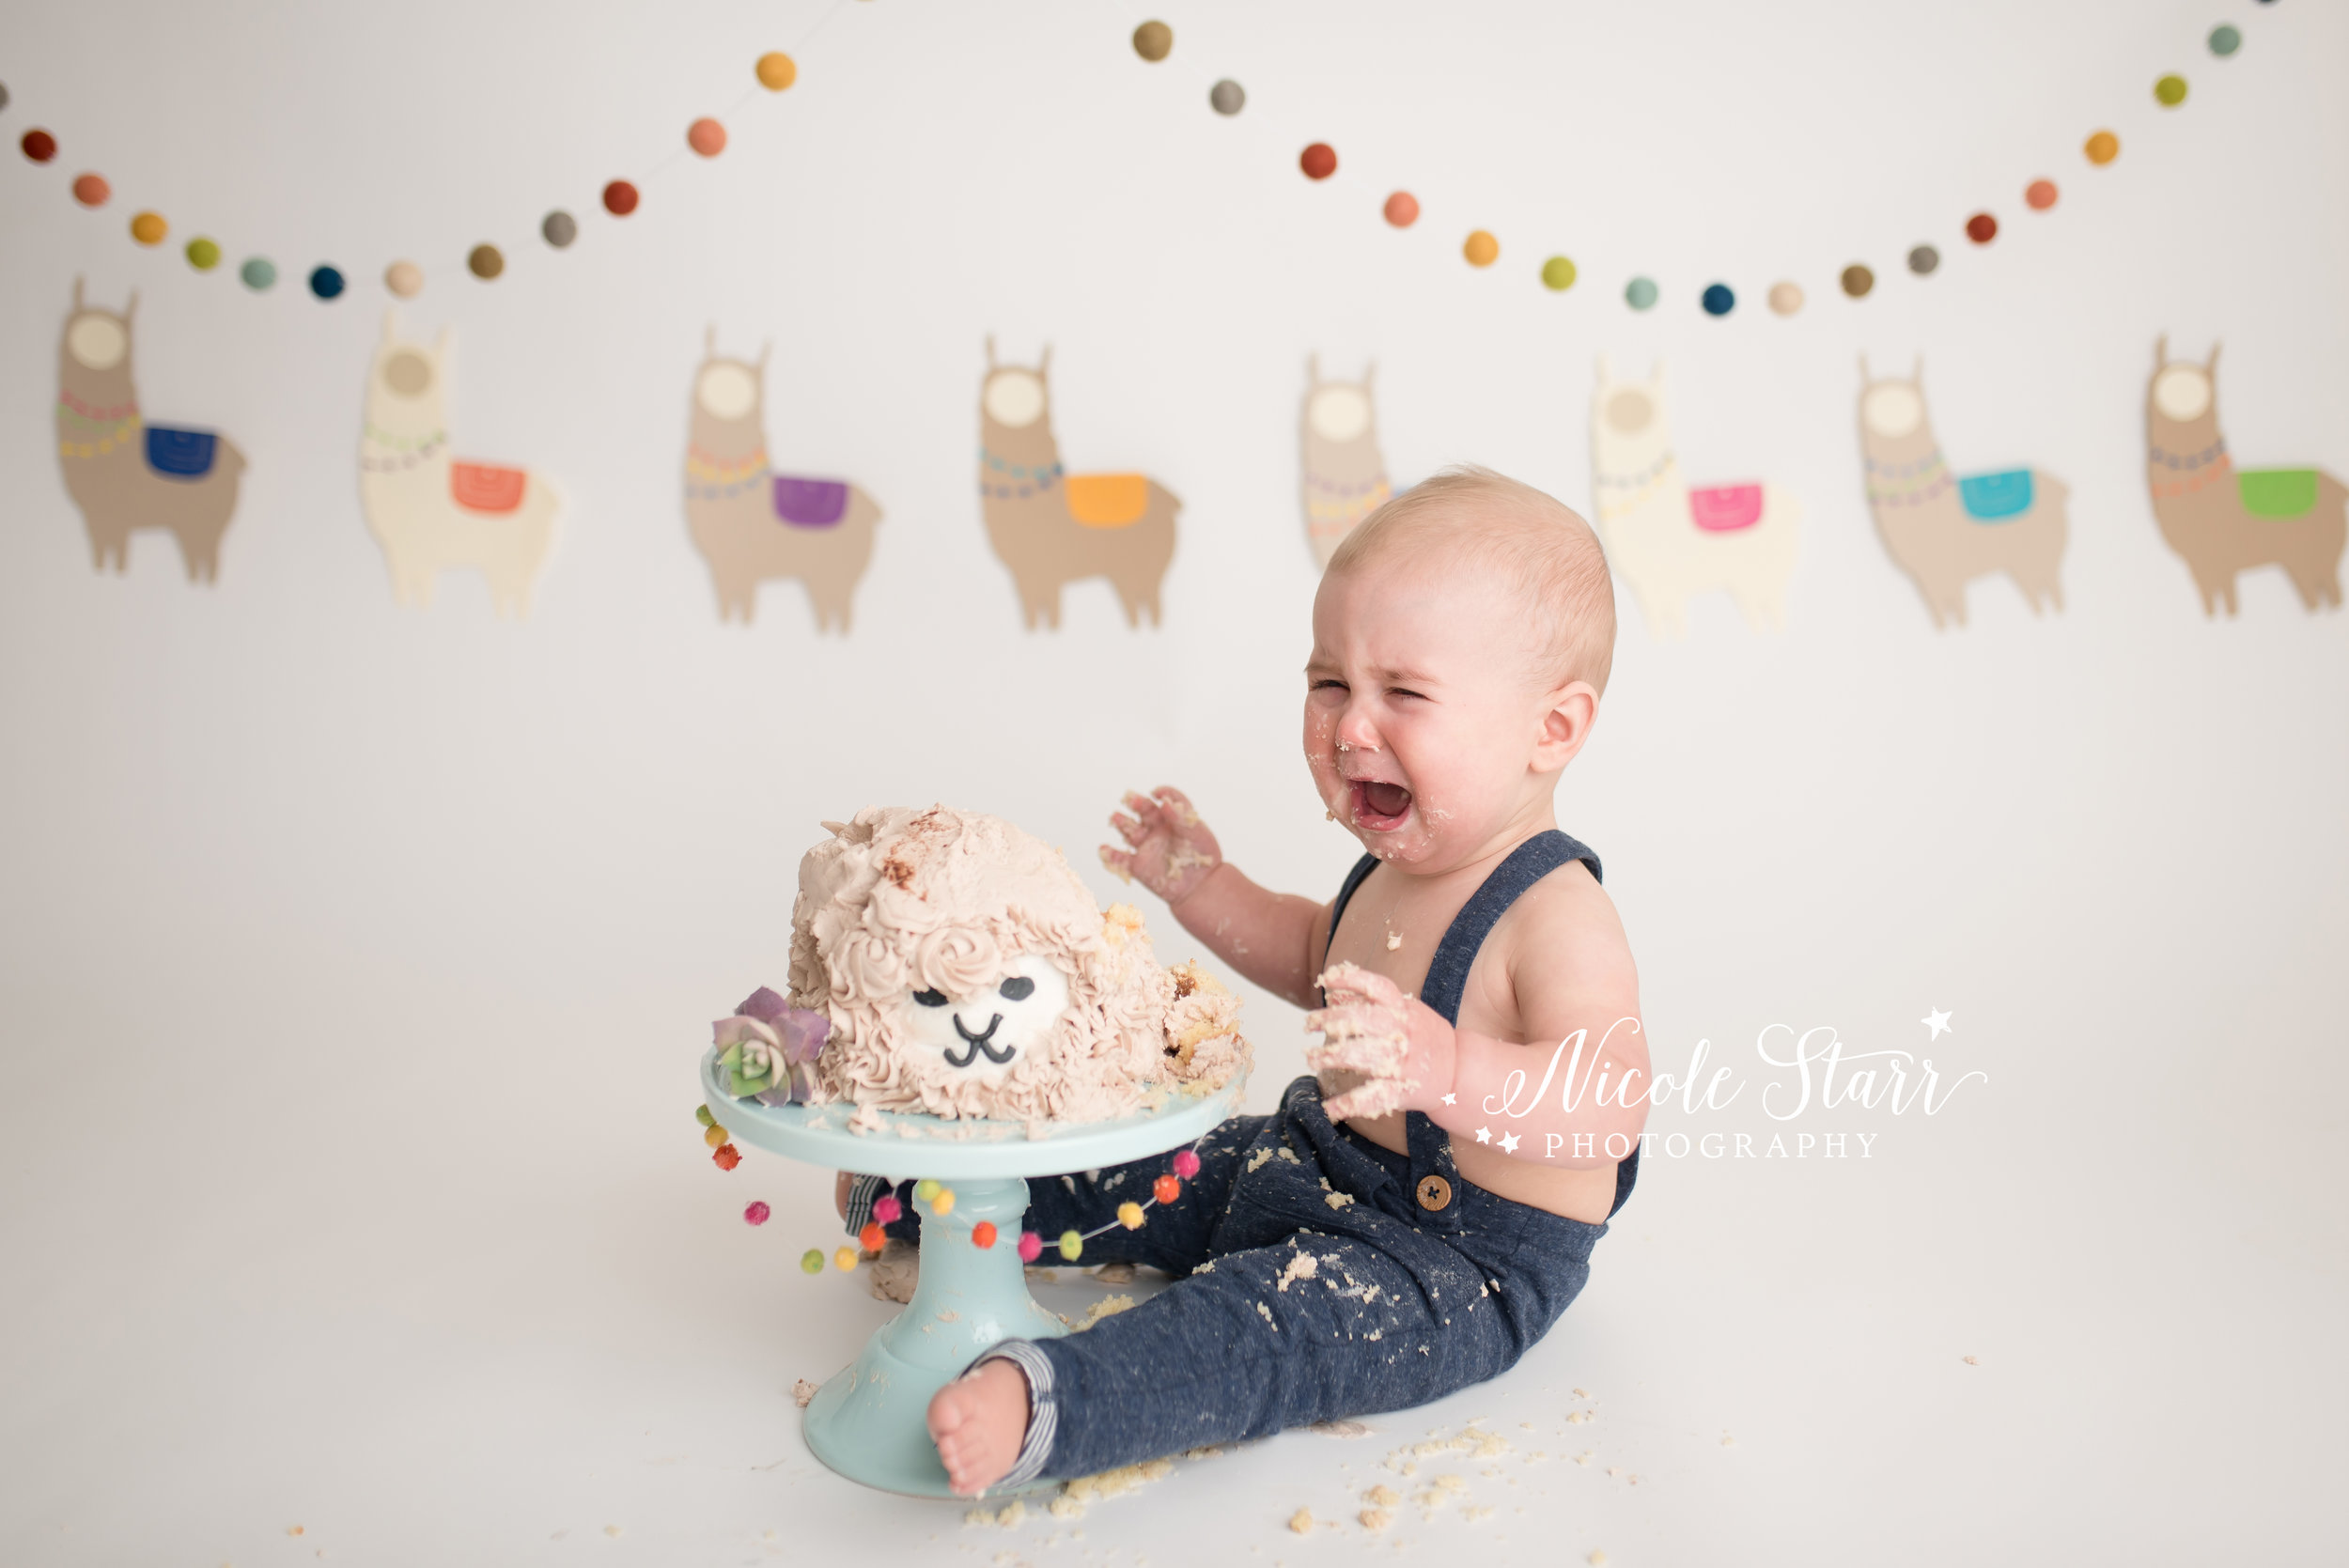 llama cake smash, nicole starr photography, saratoga springs cake smash photographer-15.jpg